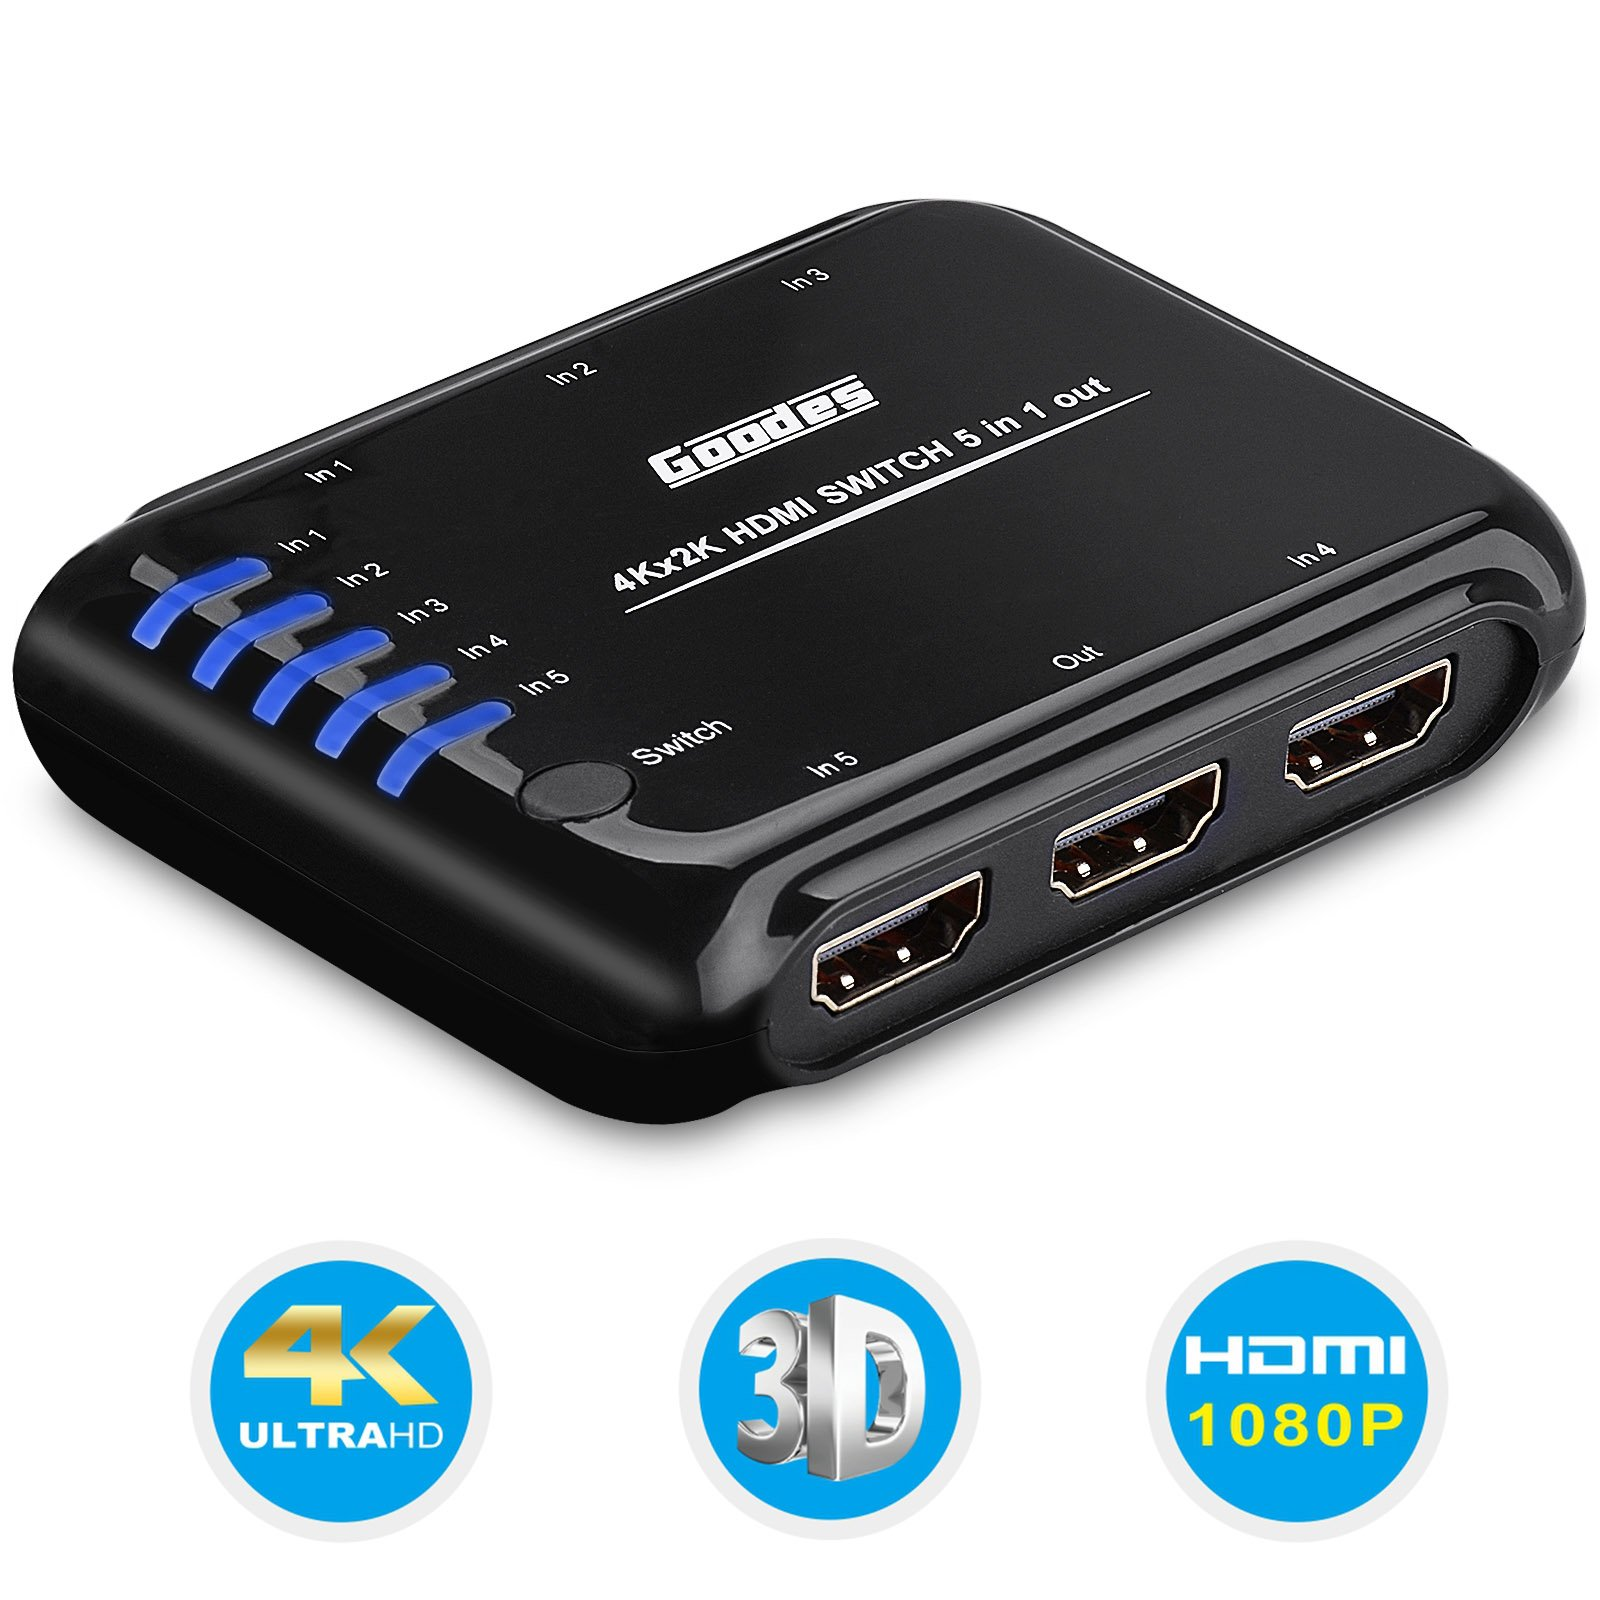 5X1 HDMI Switch Box - Goodes 4K 5 Port HDMI Switcher with Remote Control and AC Power Adapter HDMI Hub Splitter Support 4Kx2K 3D for TV PS4 XBOX One Roku4